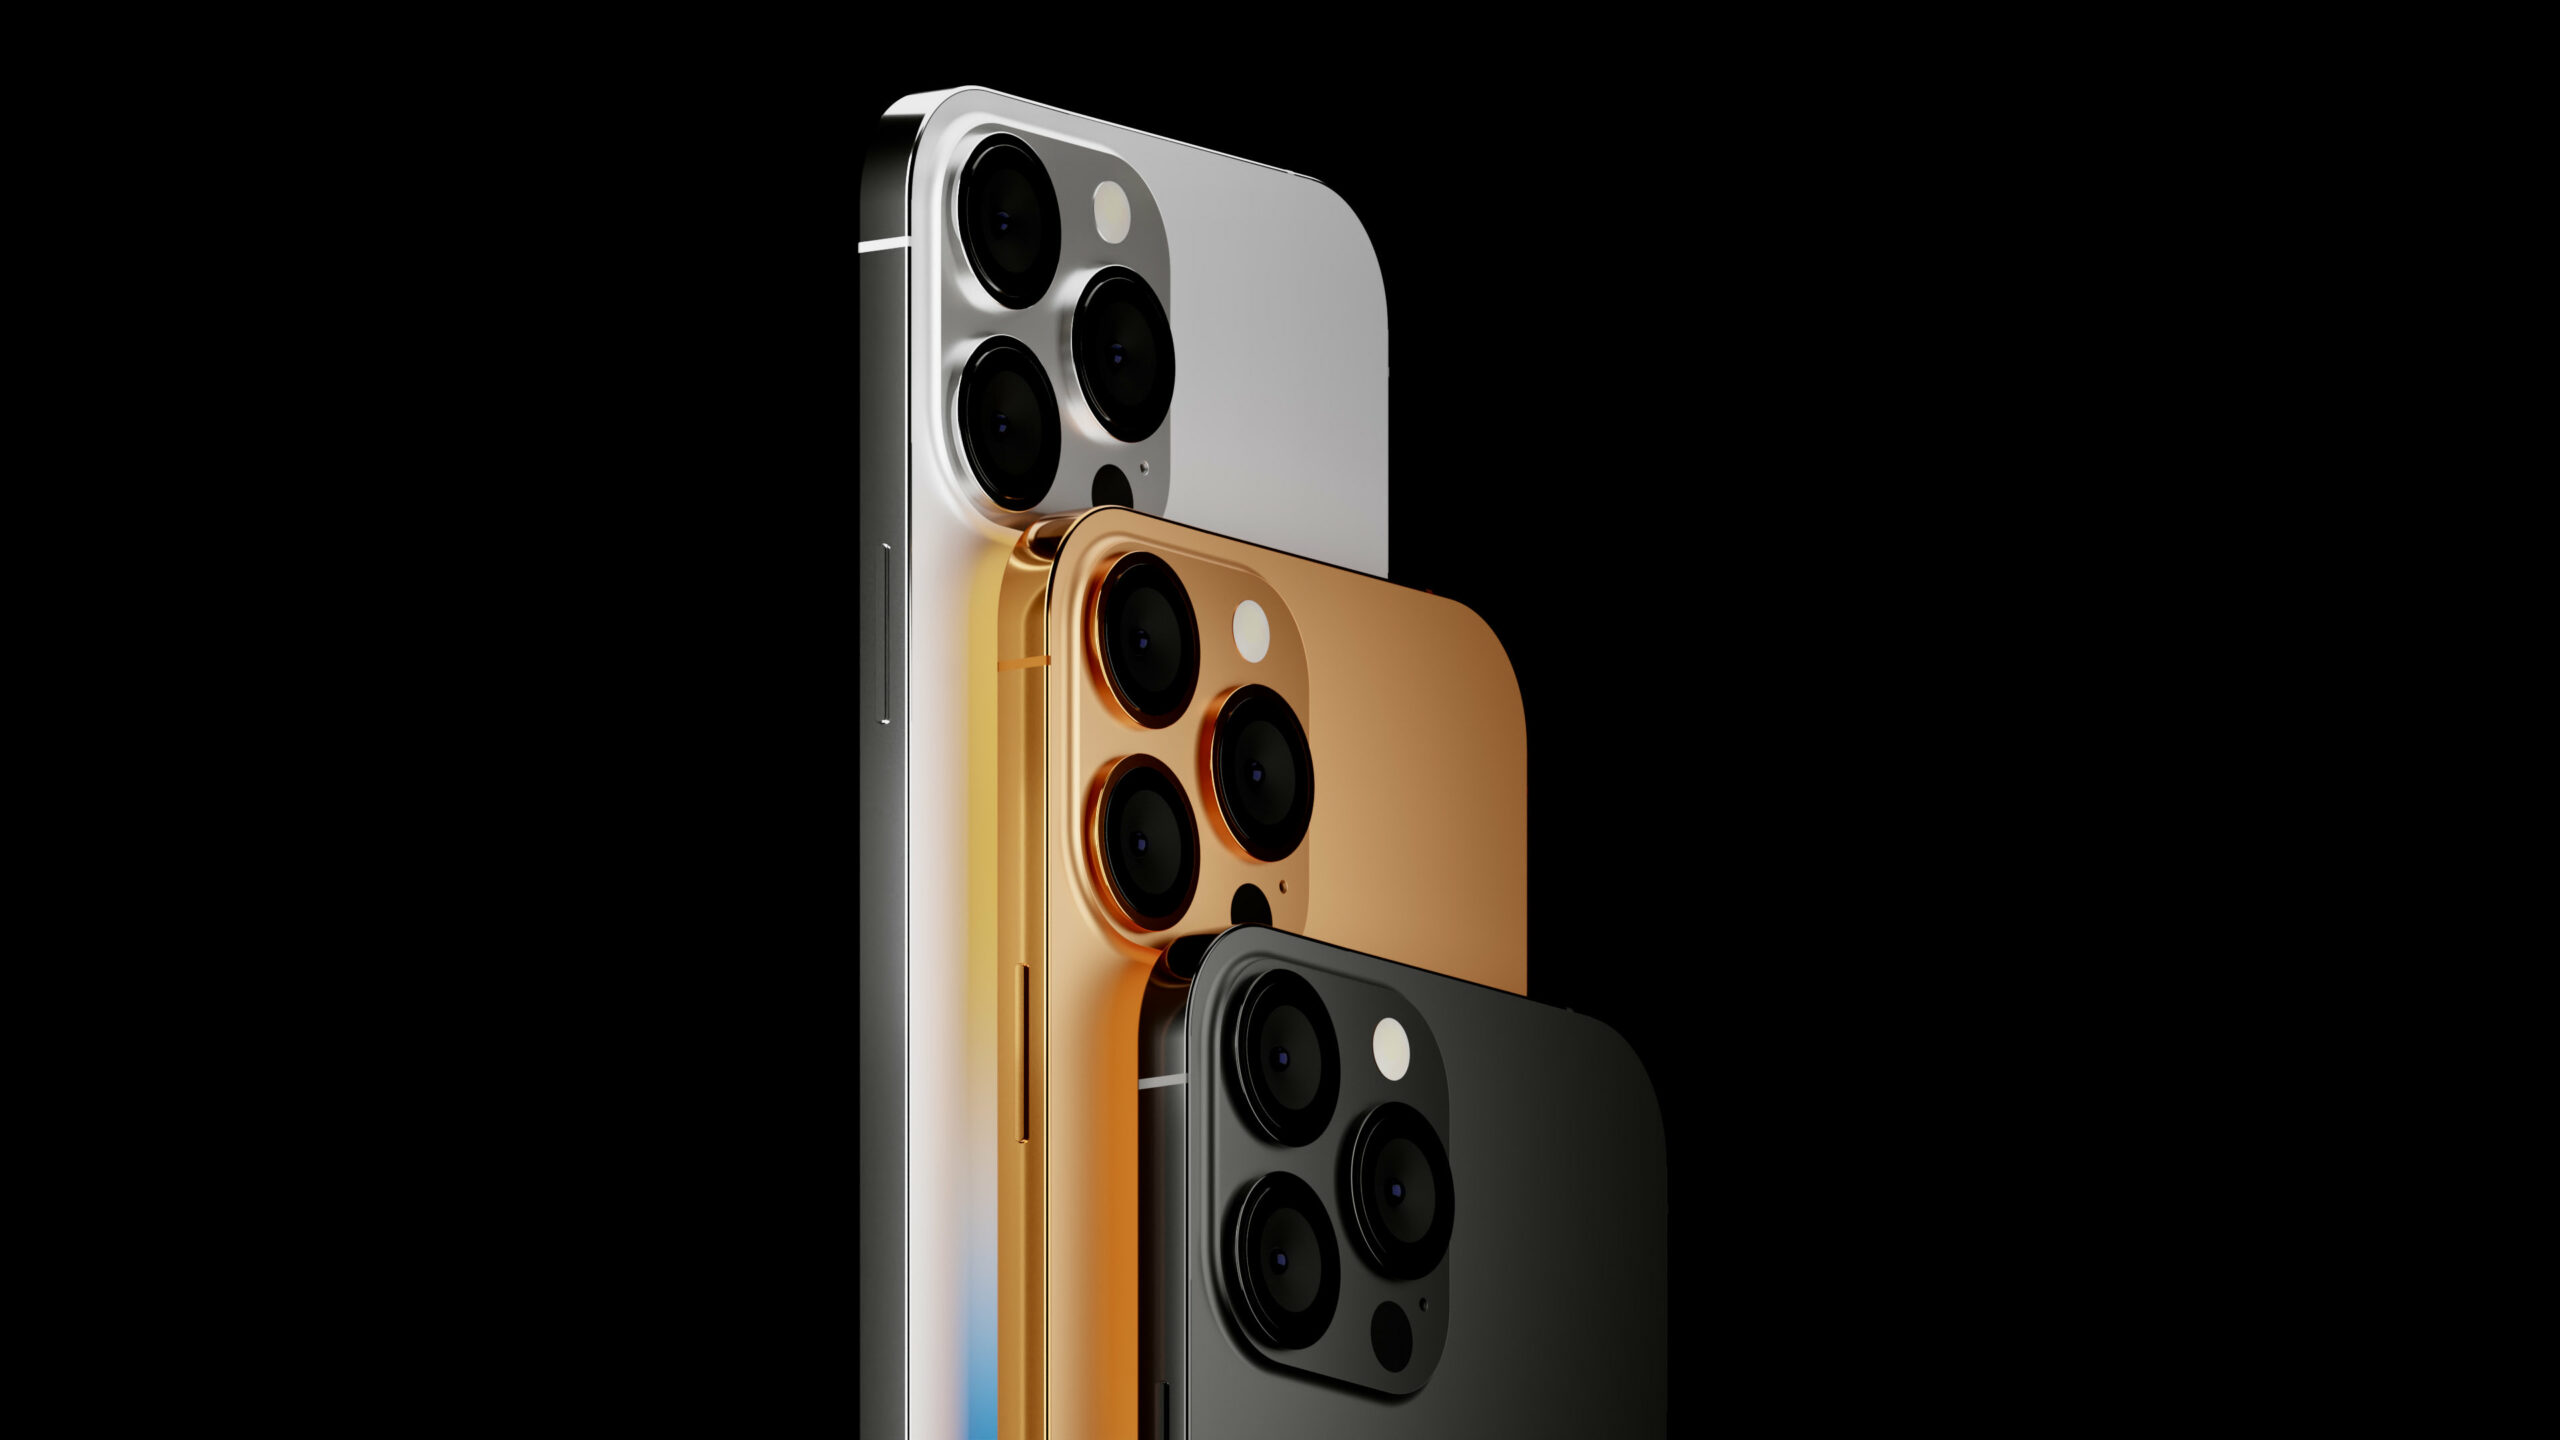 iPhone 13 VS iPhone 11 – Models and pricing